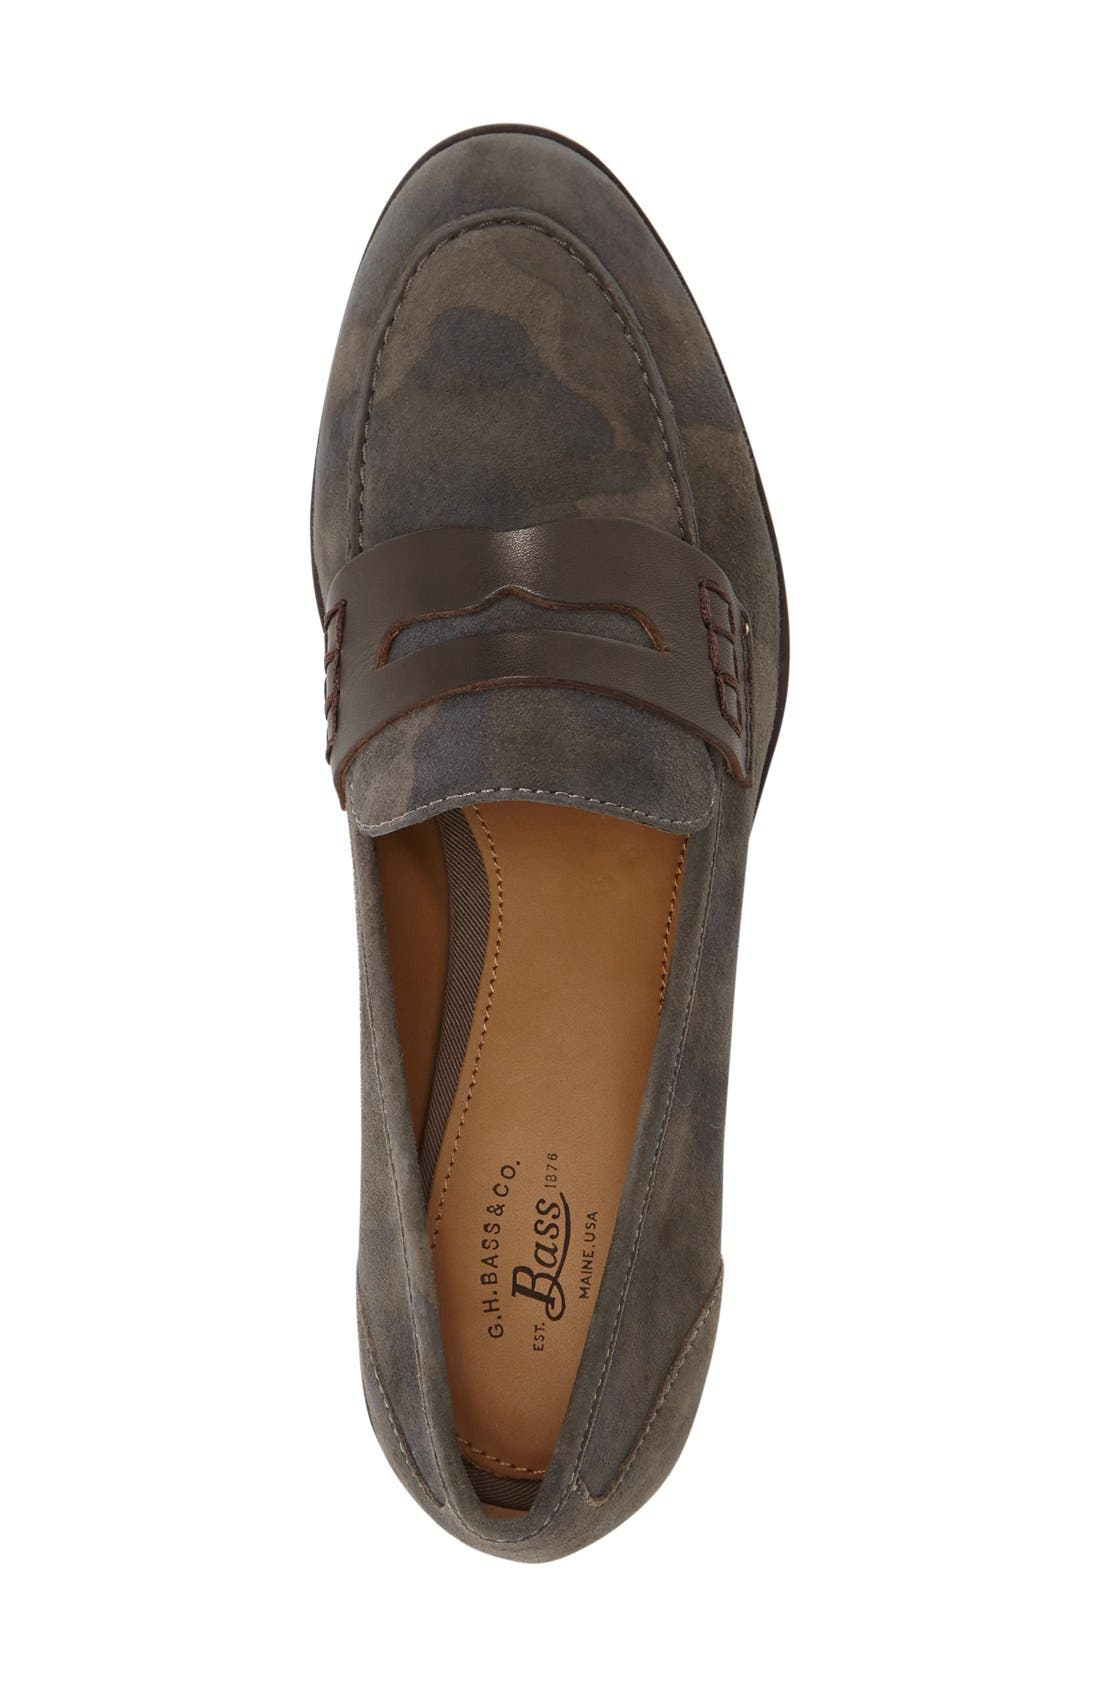 Emilia Penny Loafer,                             Alternate thumbnail 3, color,                             Camo/ Espresso Suede